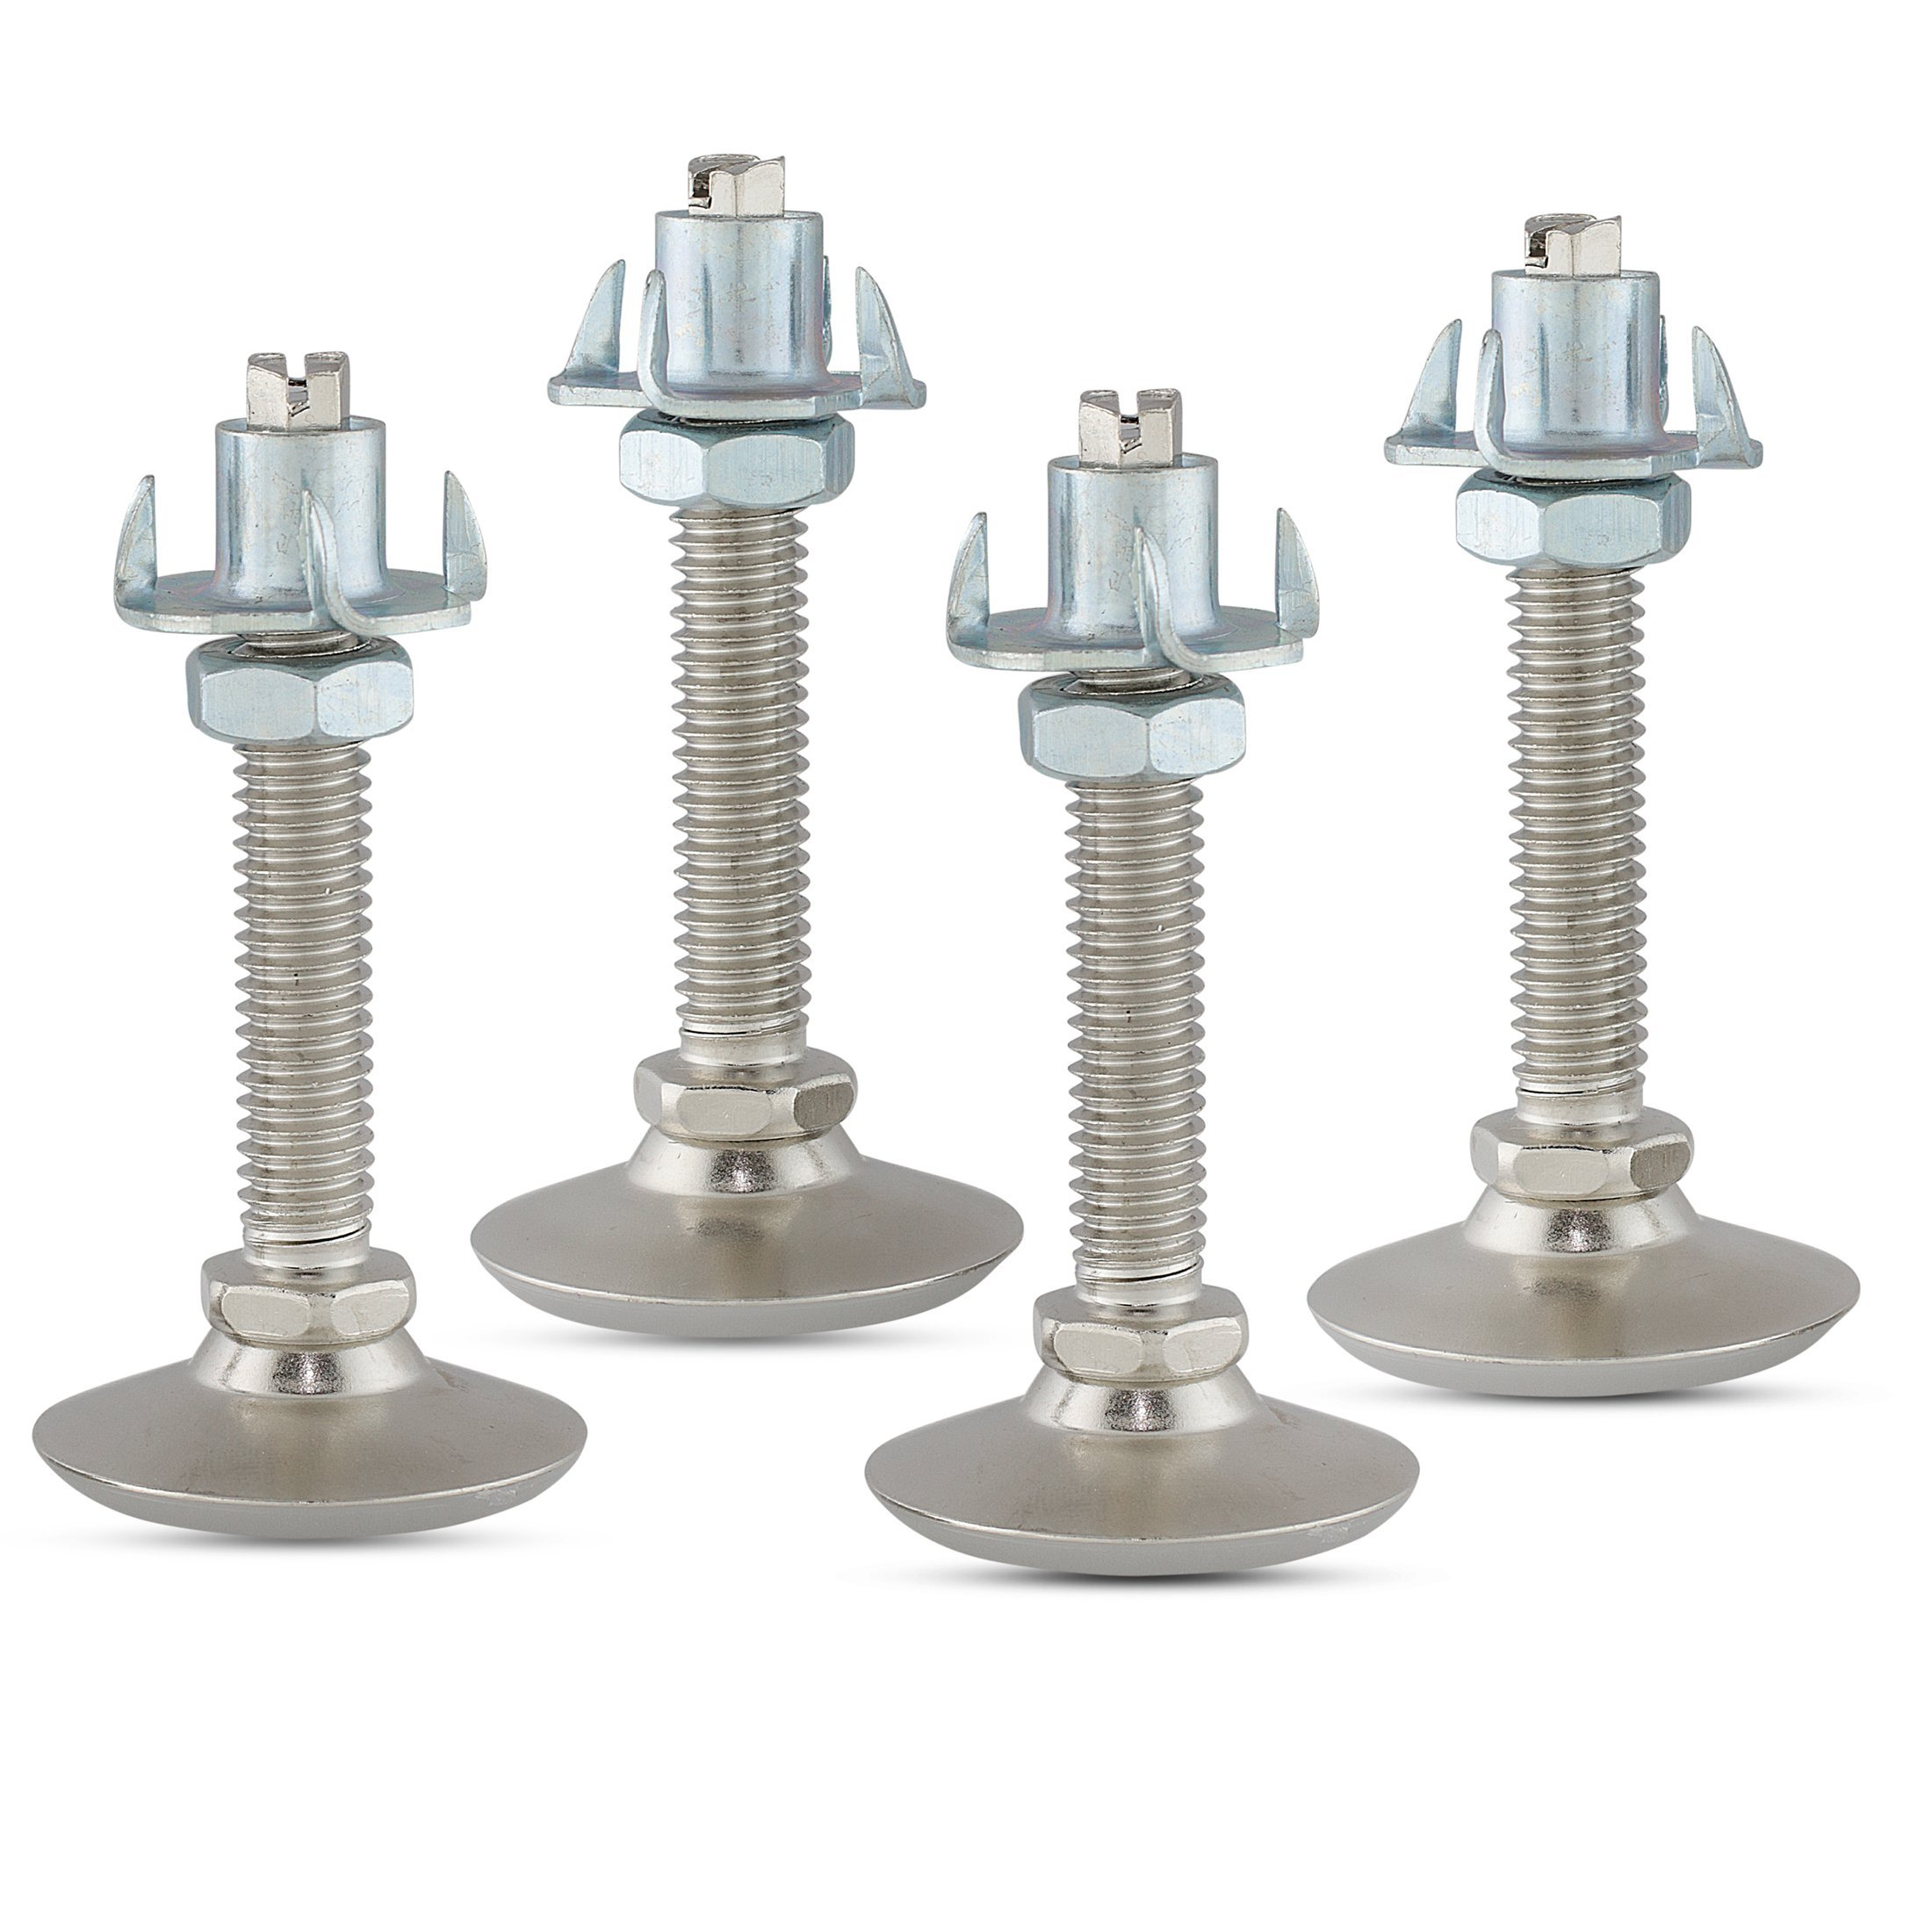 Furniture Leveler or Leg Extender Kit – 4-Pack of 3/8 Swivel Glide levelers with 4 Prong T-Nuts and Jam Nuts for Table or Cabinet Feet to Adjust Height